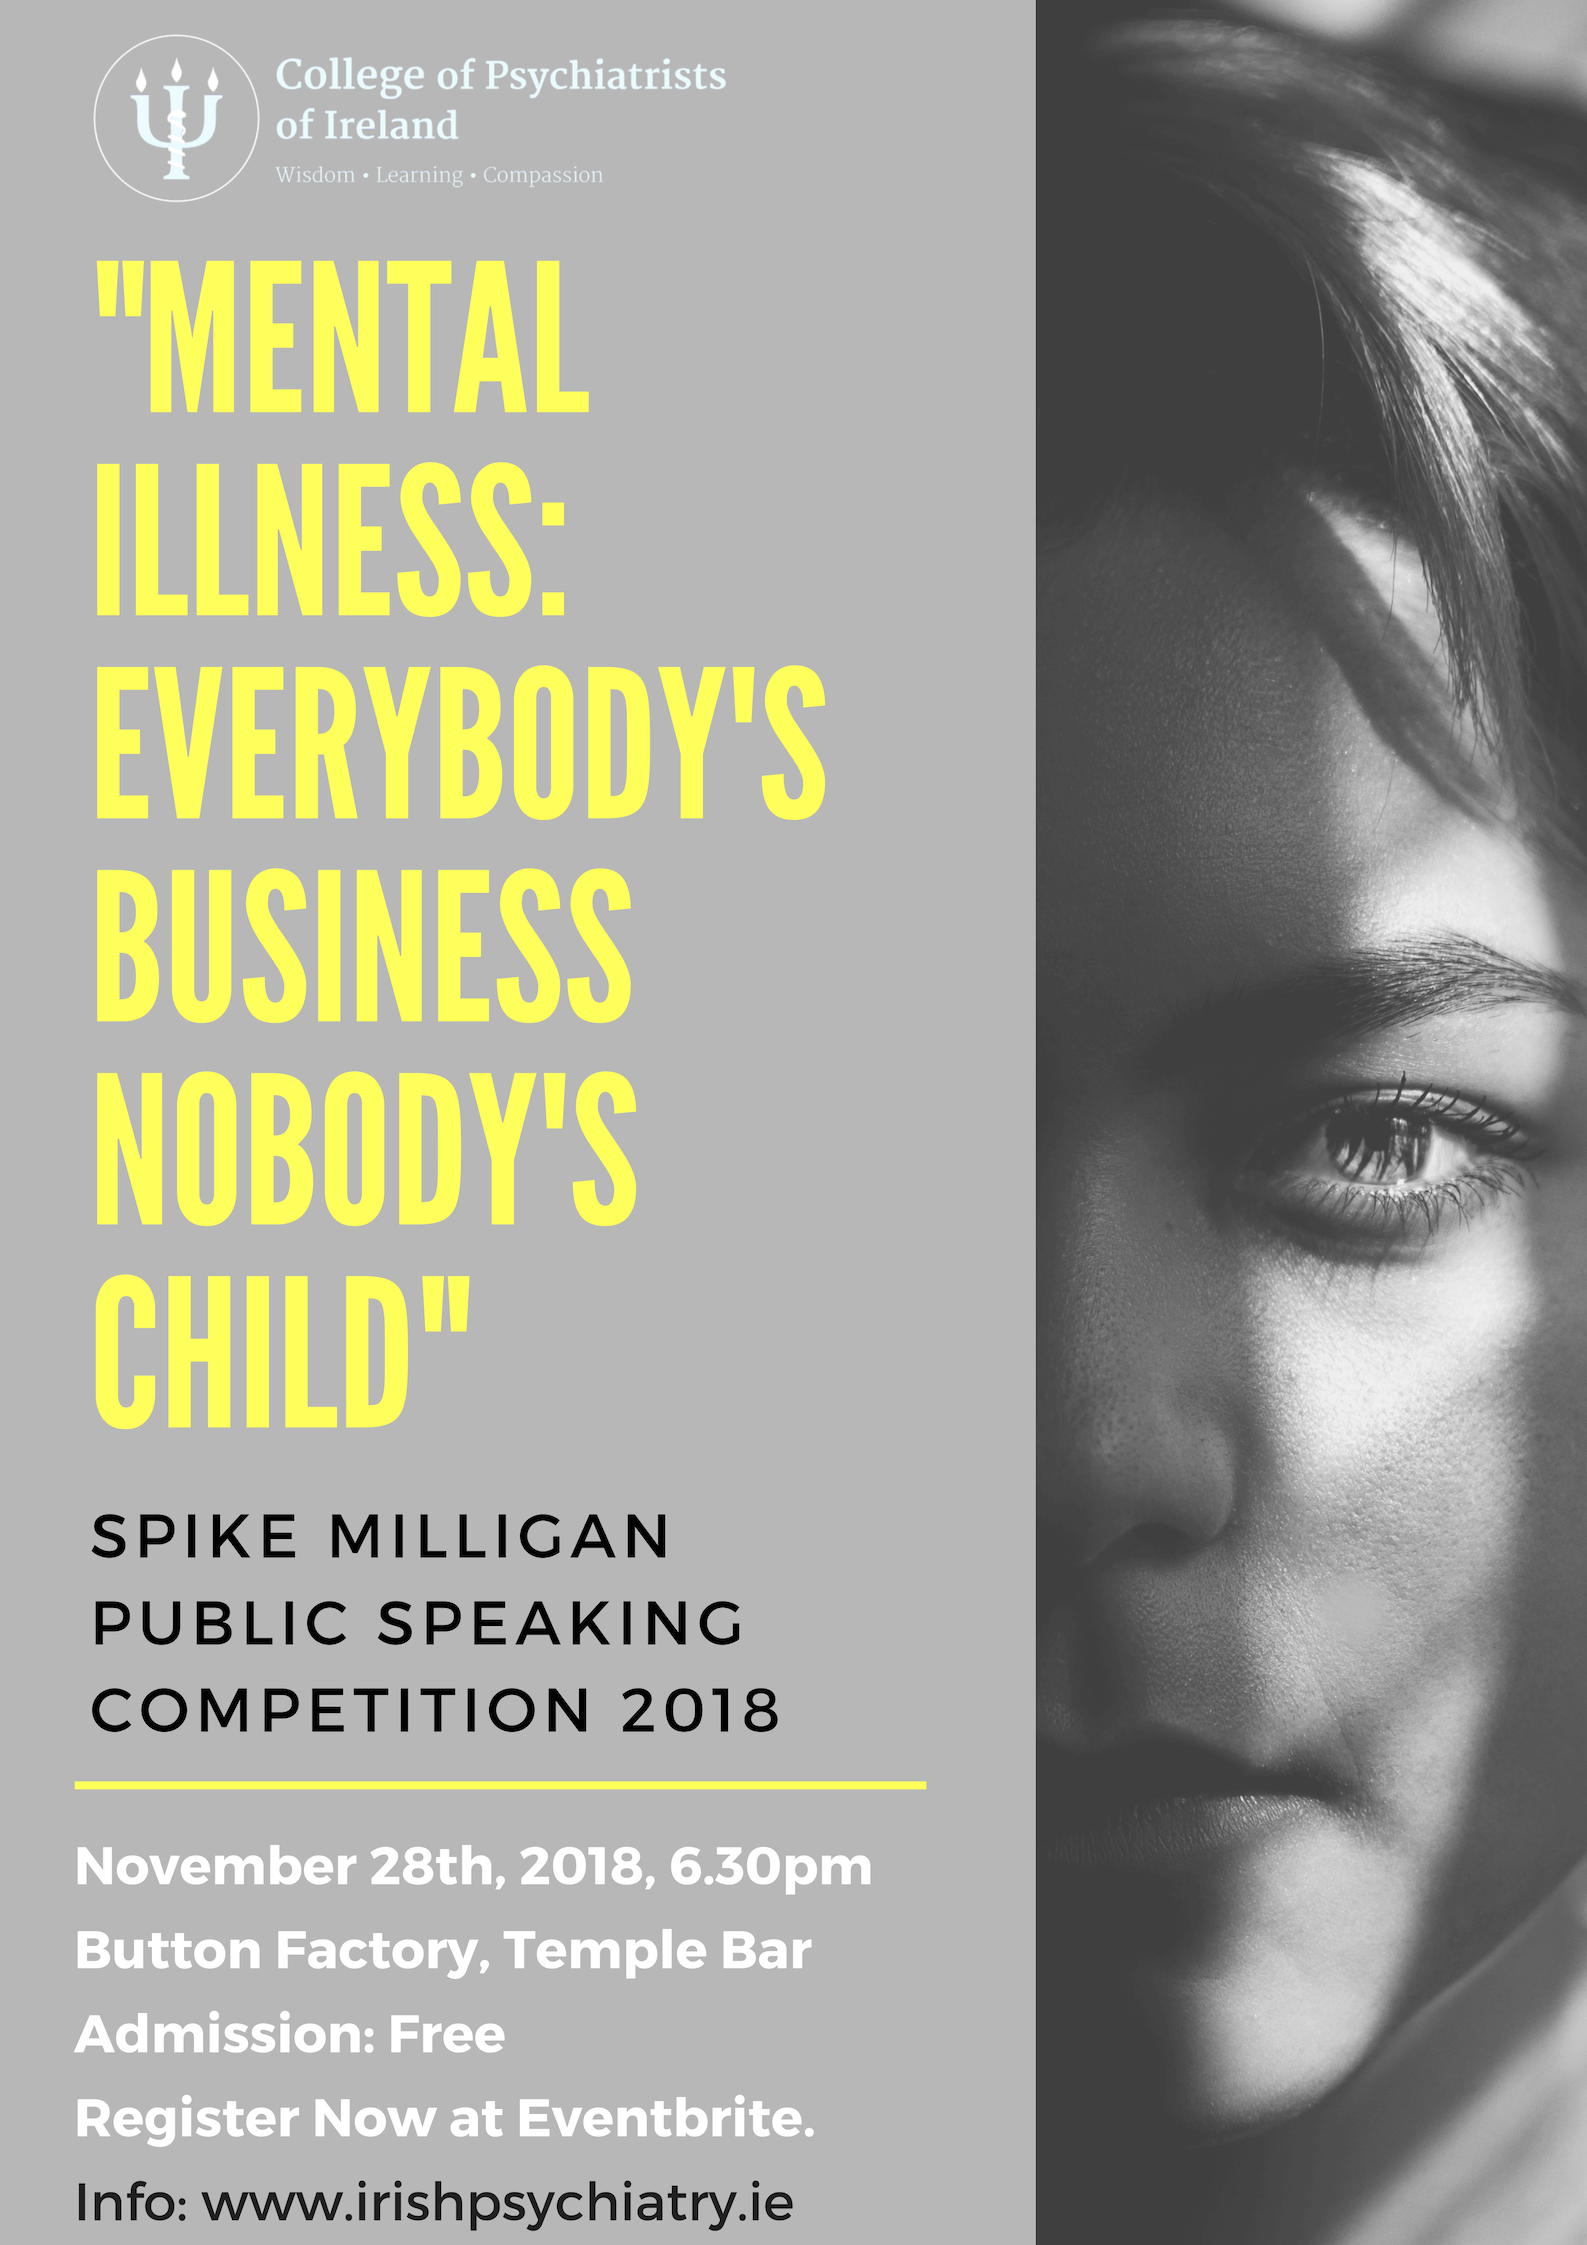 Spike Milligan Competition 2018 – The College of